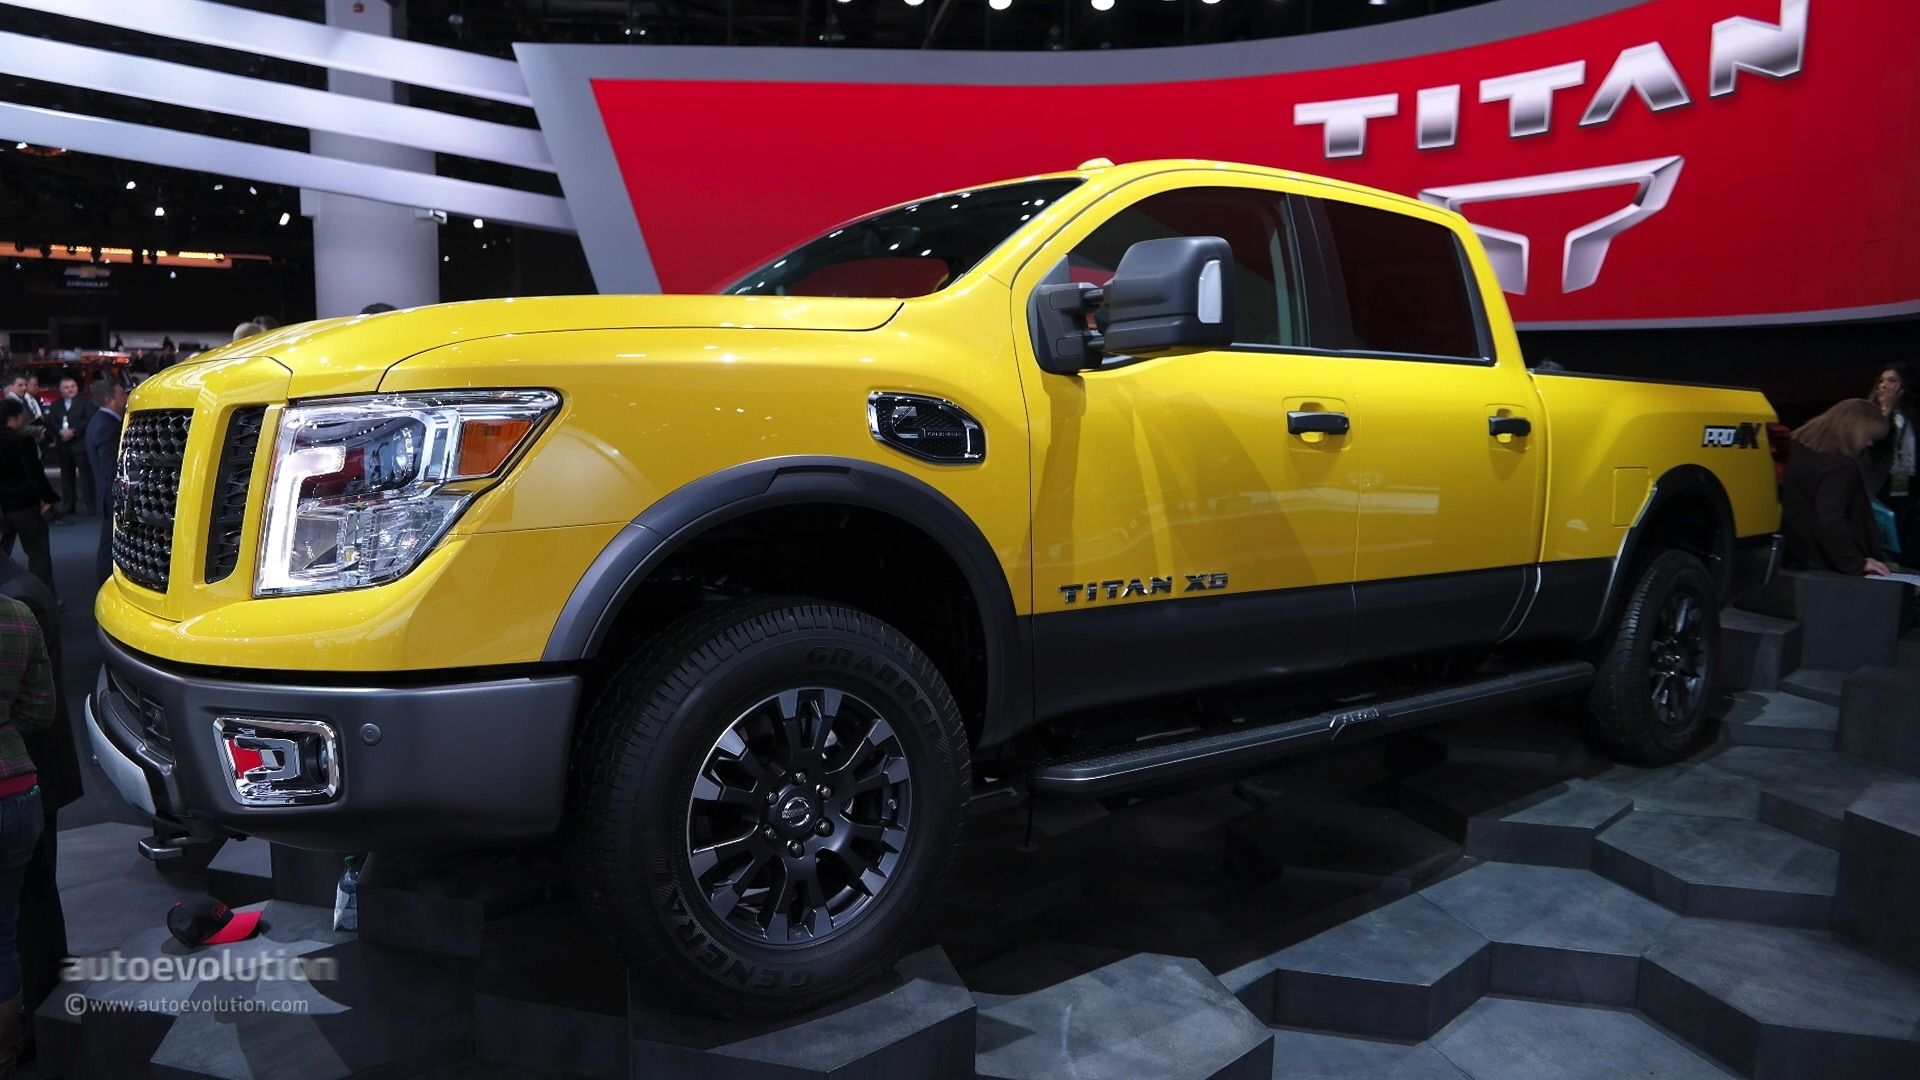 detroit xd article show pickup makes titan new power rumbles photo the nissan gallery into updated auto diesel cummins debut